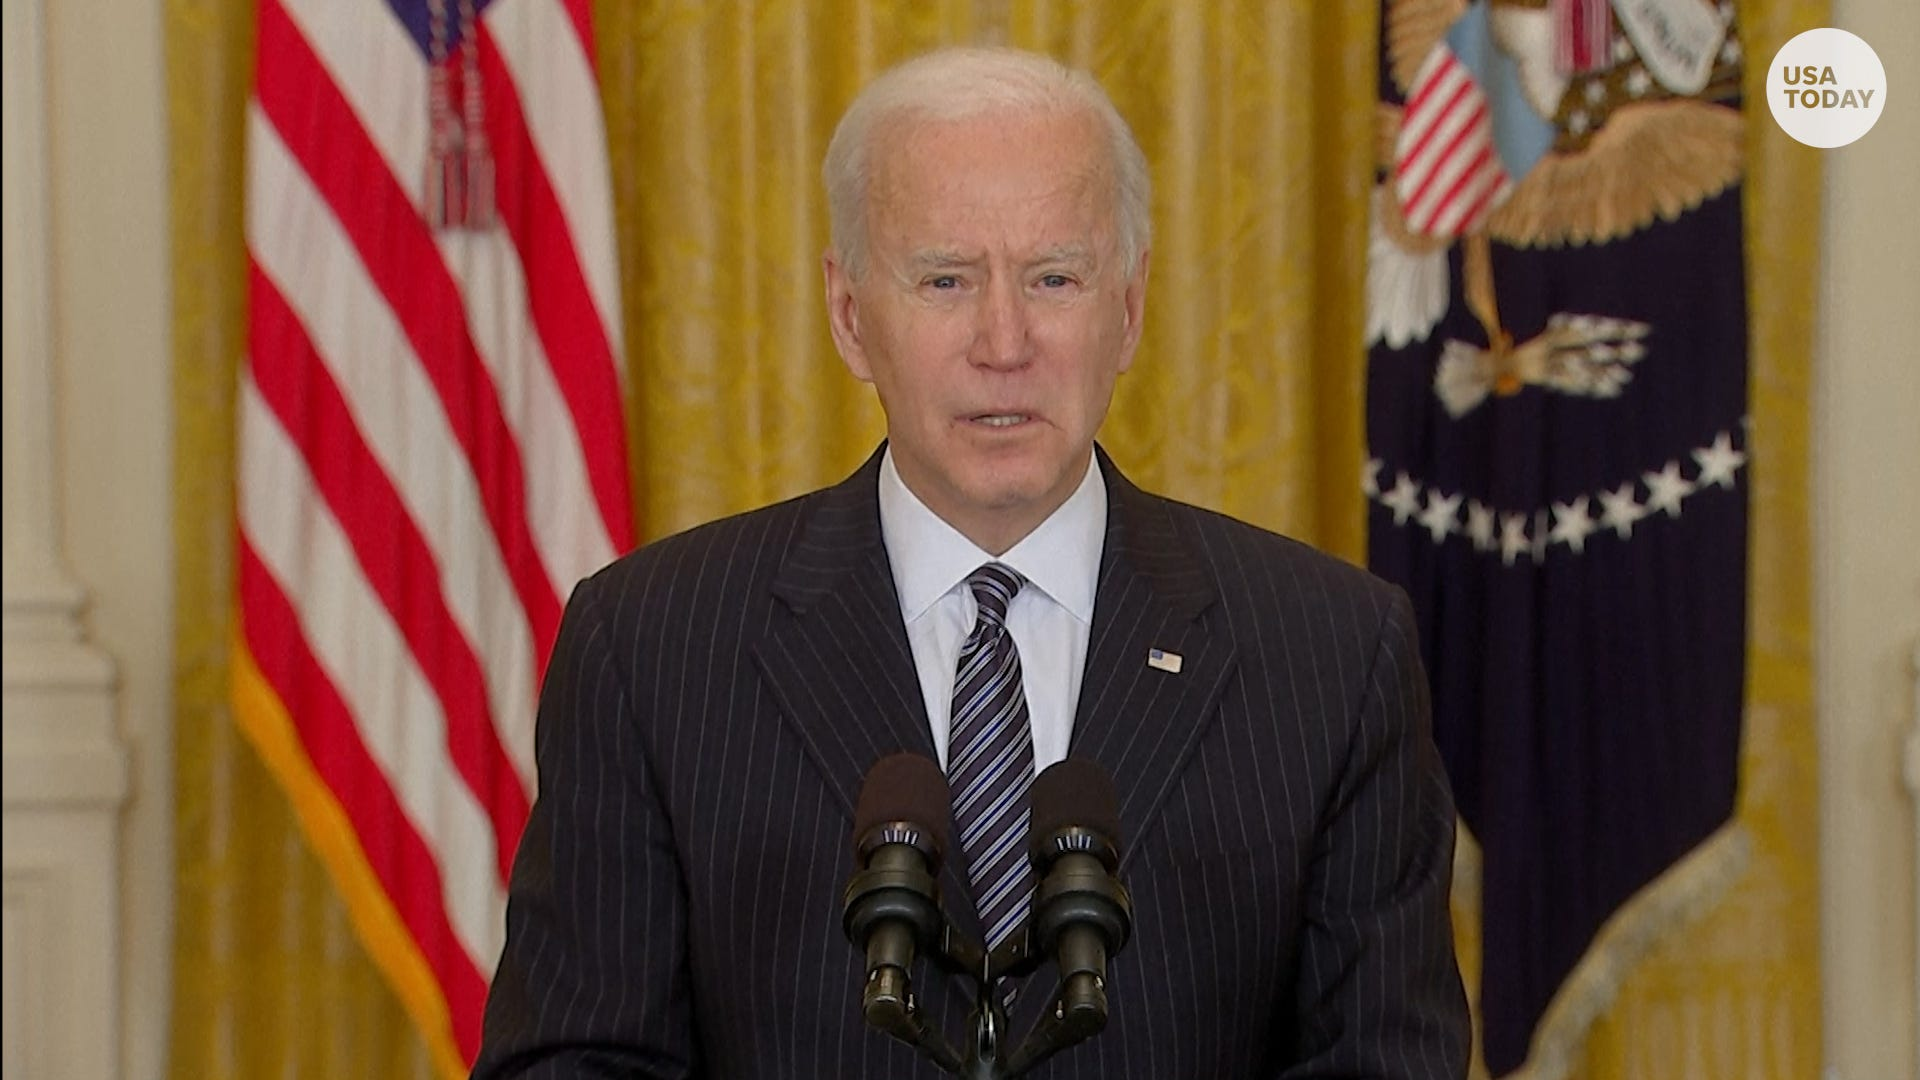 Biden discusses 100 million vaccine doses, looks forward to 'more normal' Fourth of July